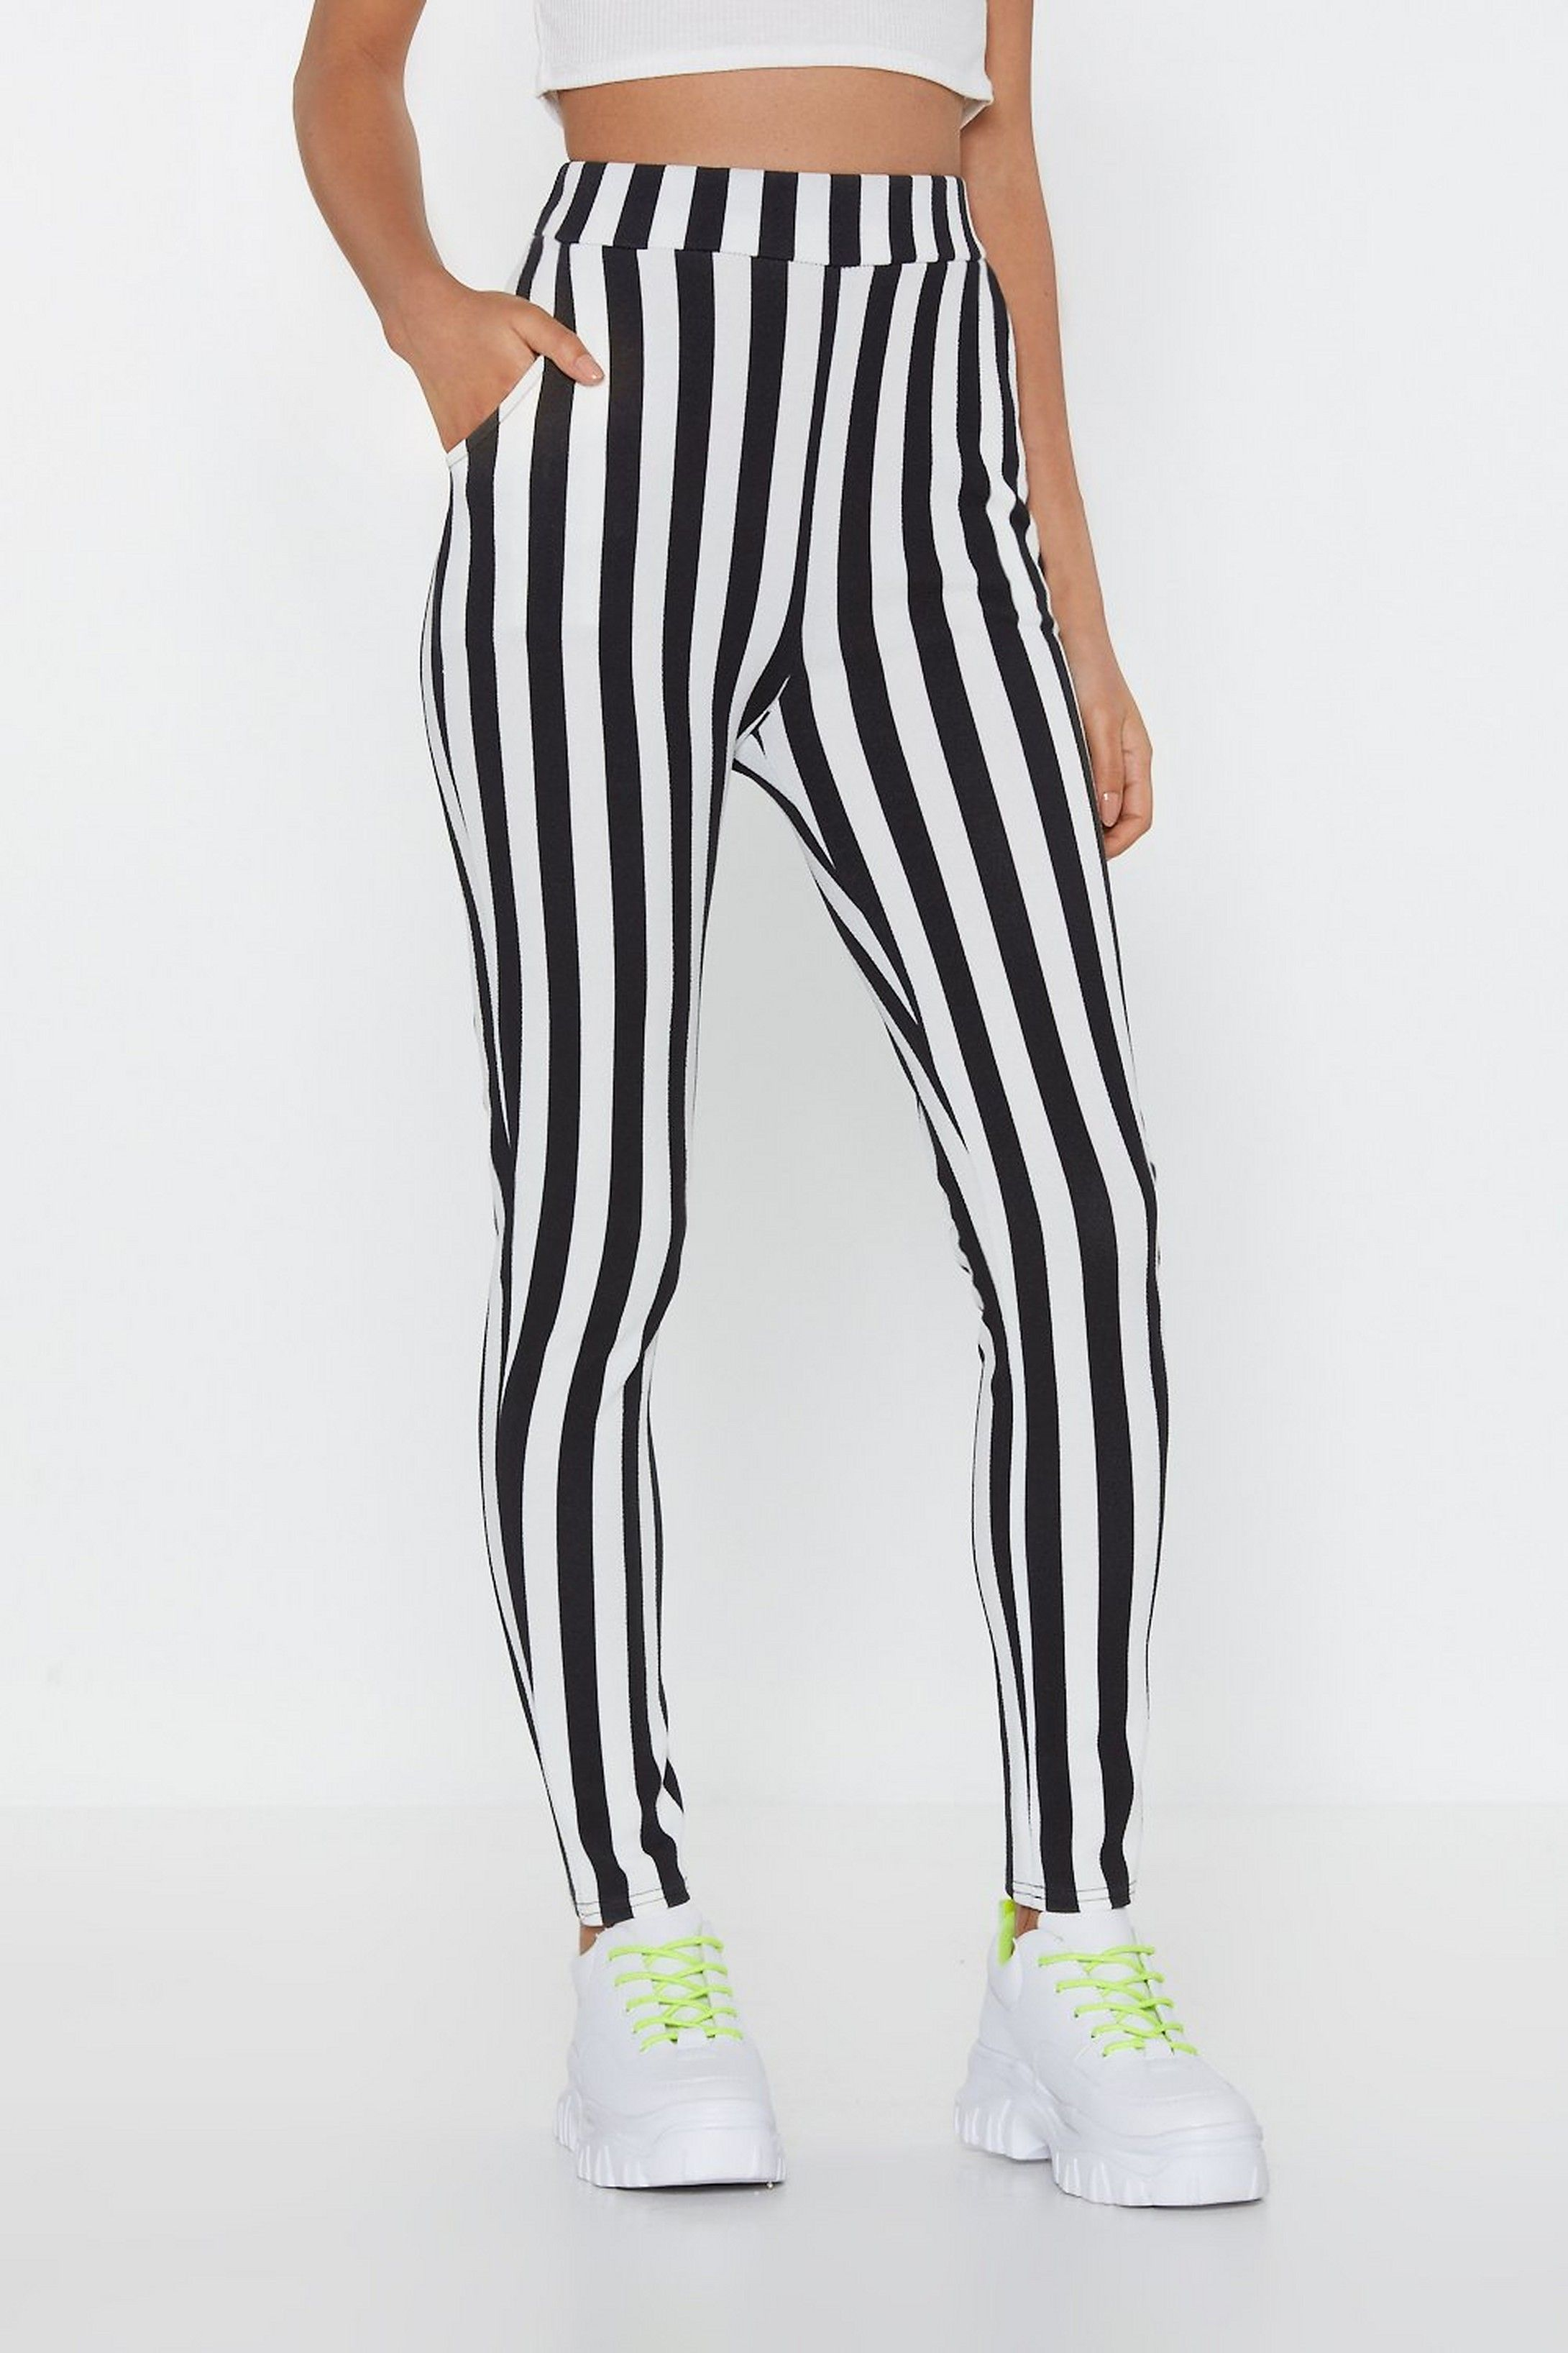 Line Your Pockets Striped Leggings   Shop Clothes at Nasty Gal #stripedleggings